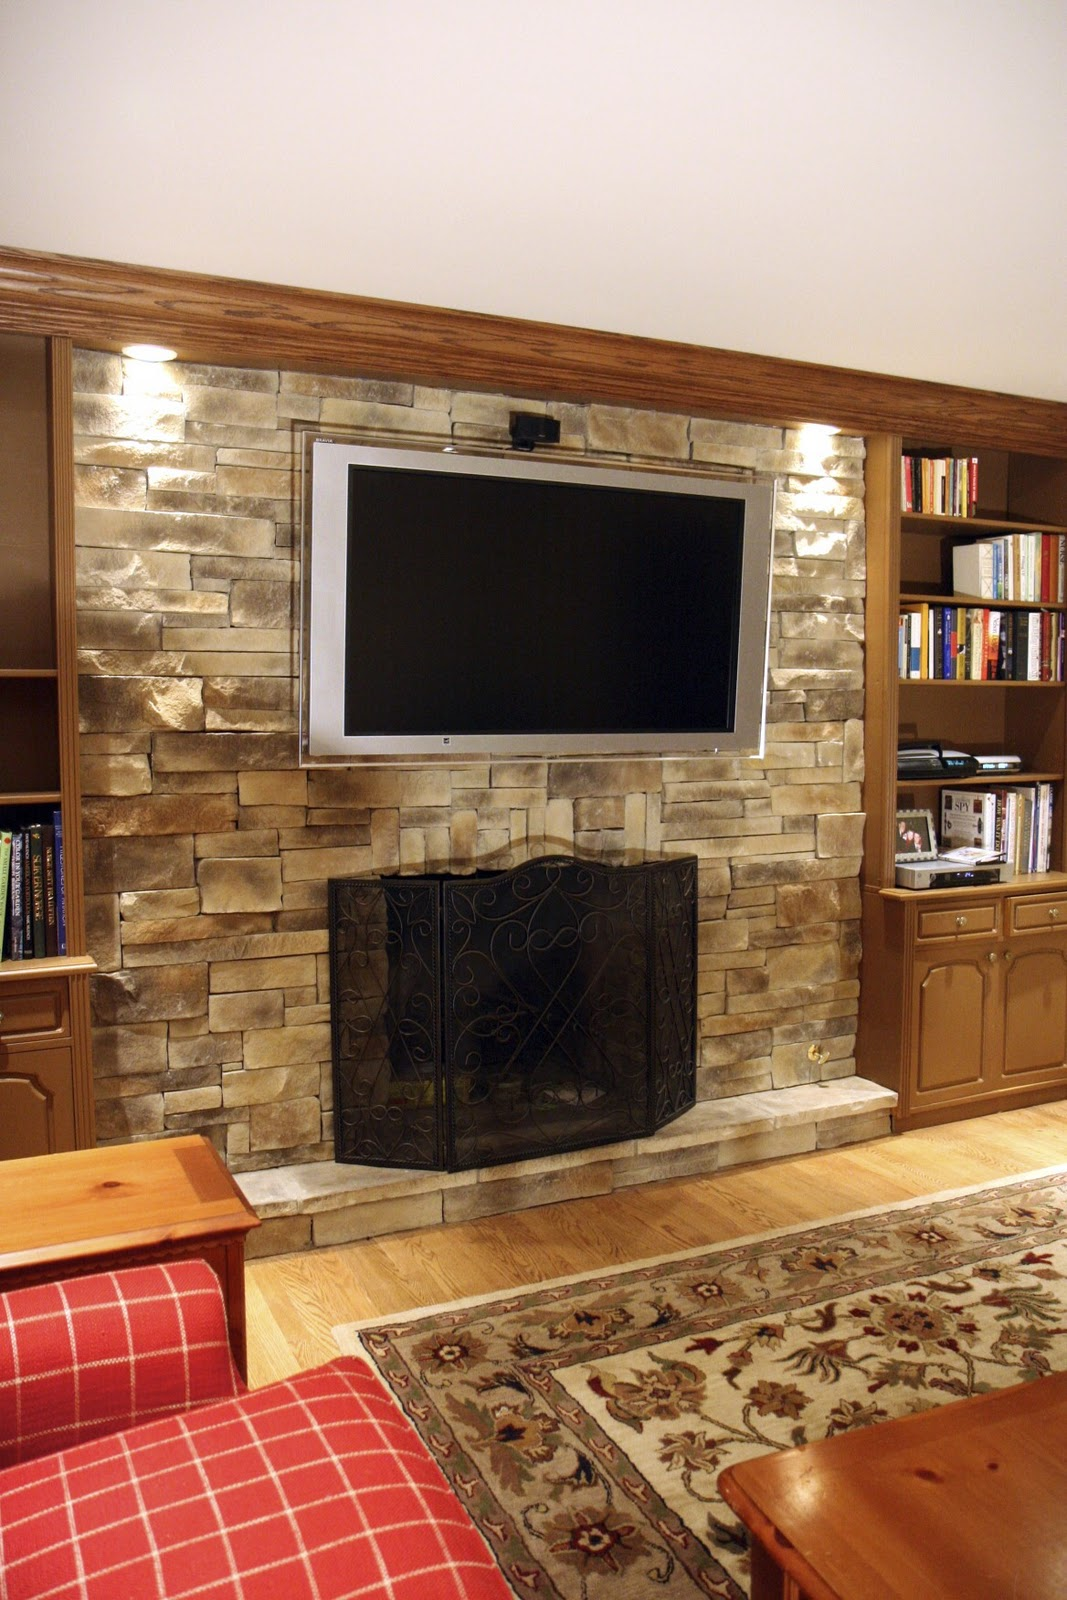 north star stone stone fireplaces stone exteriors. Black Bedroom Furniture Sets. Home Design Ideas